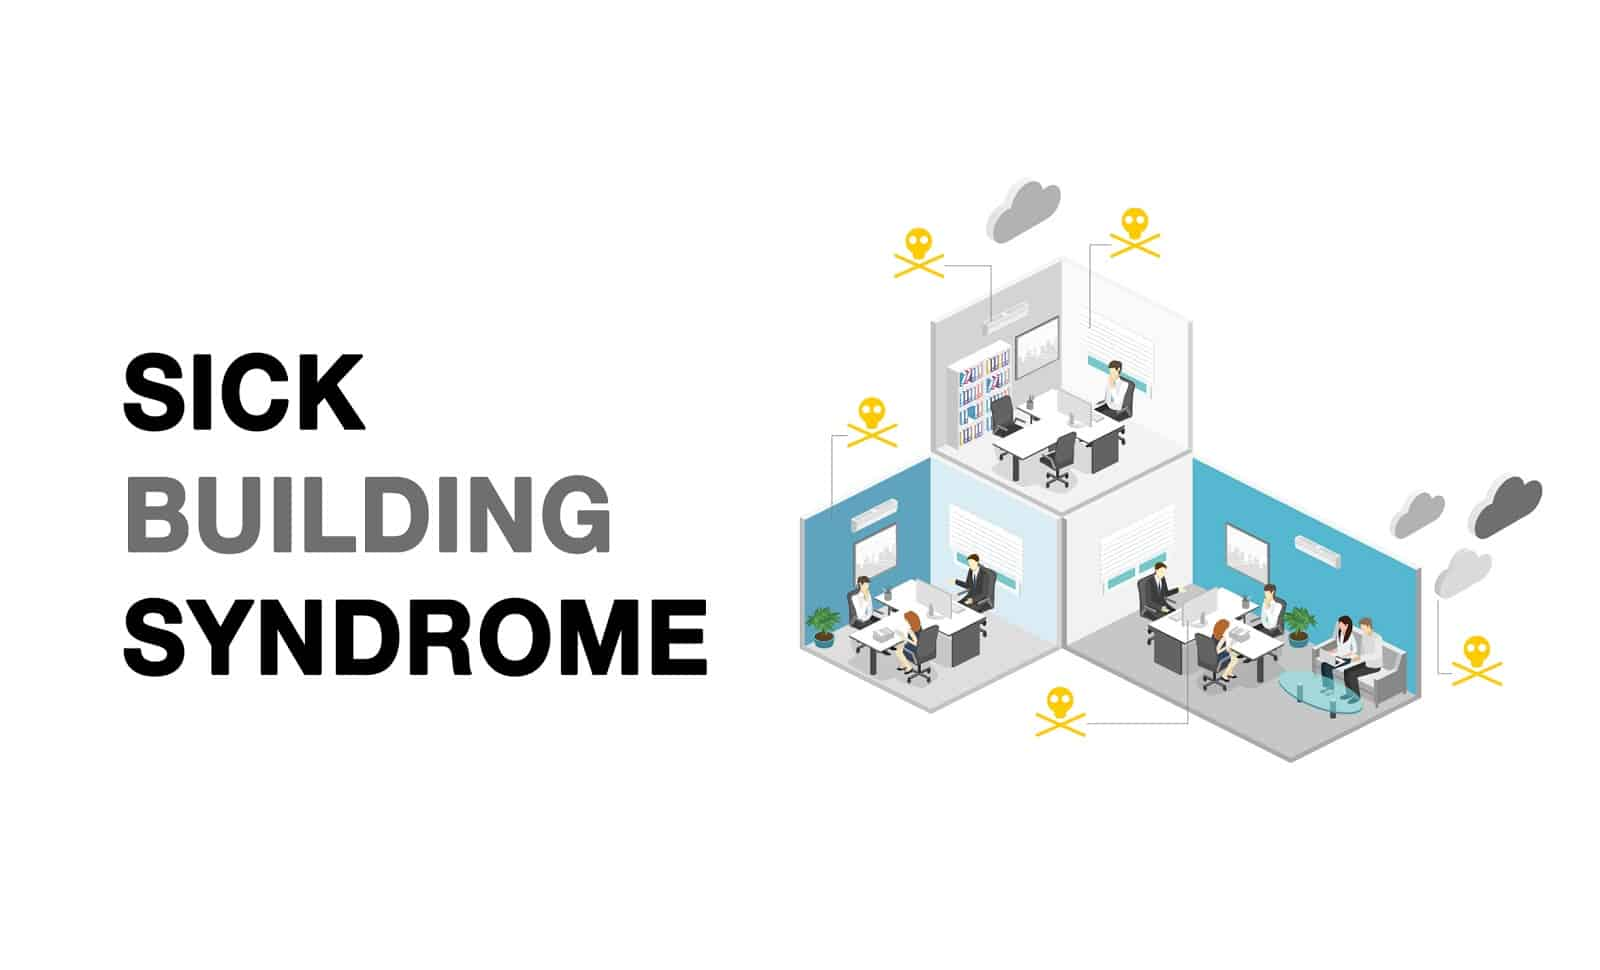 Sick Building Syndrome: What Is It and How Can IoT Help?